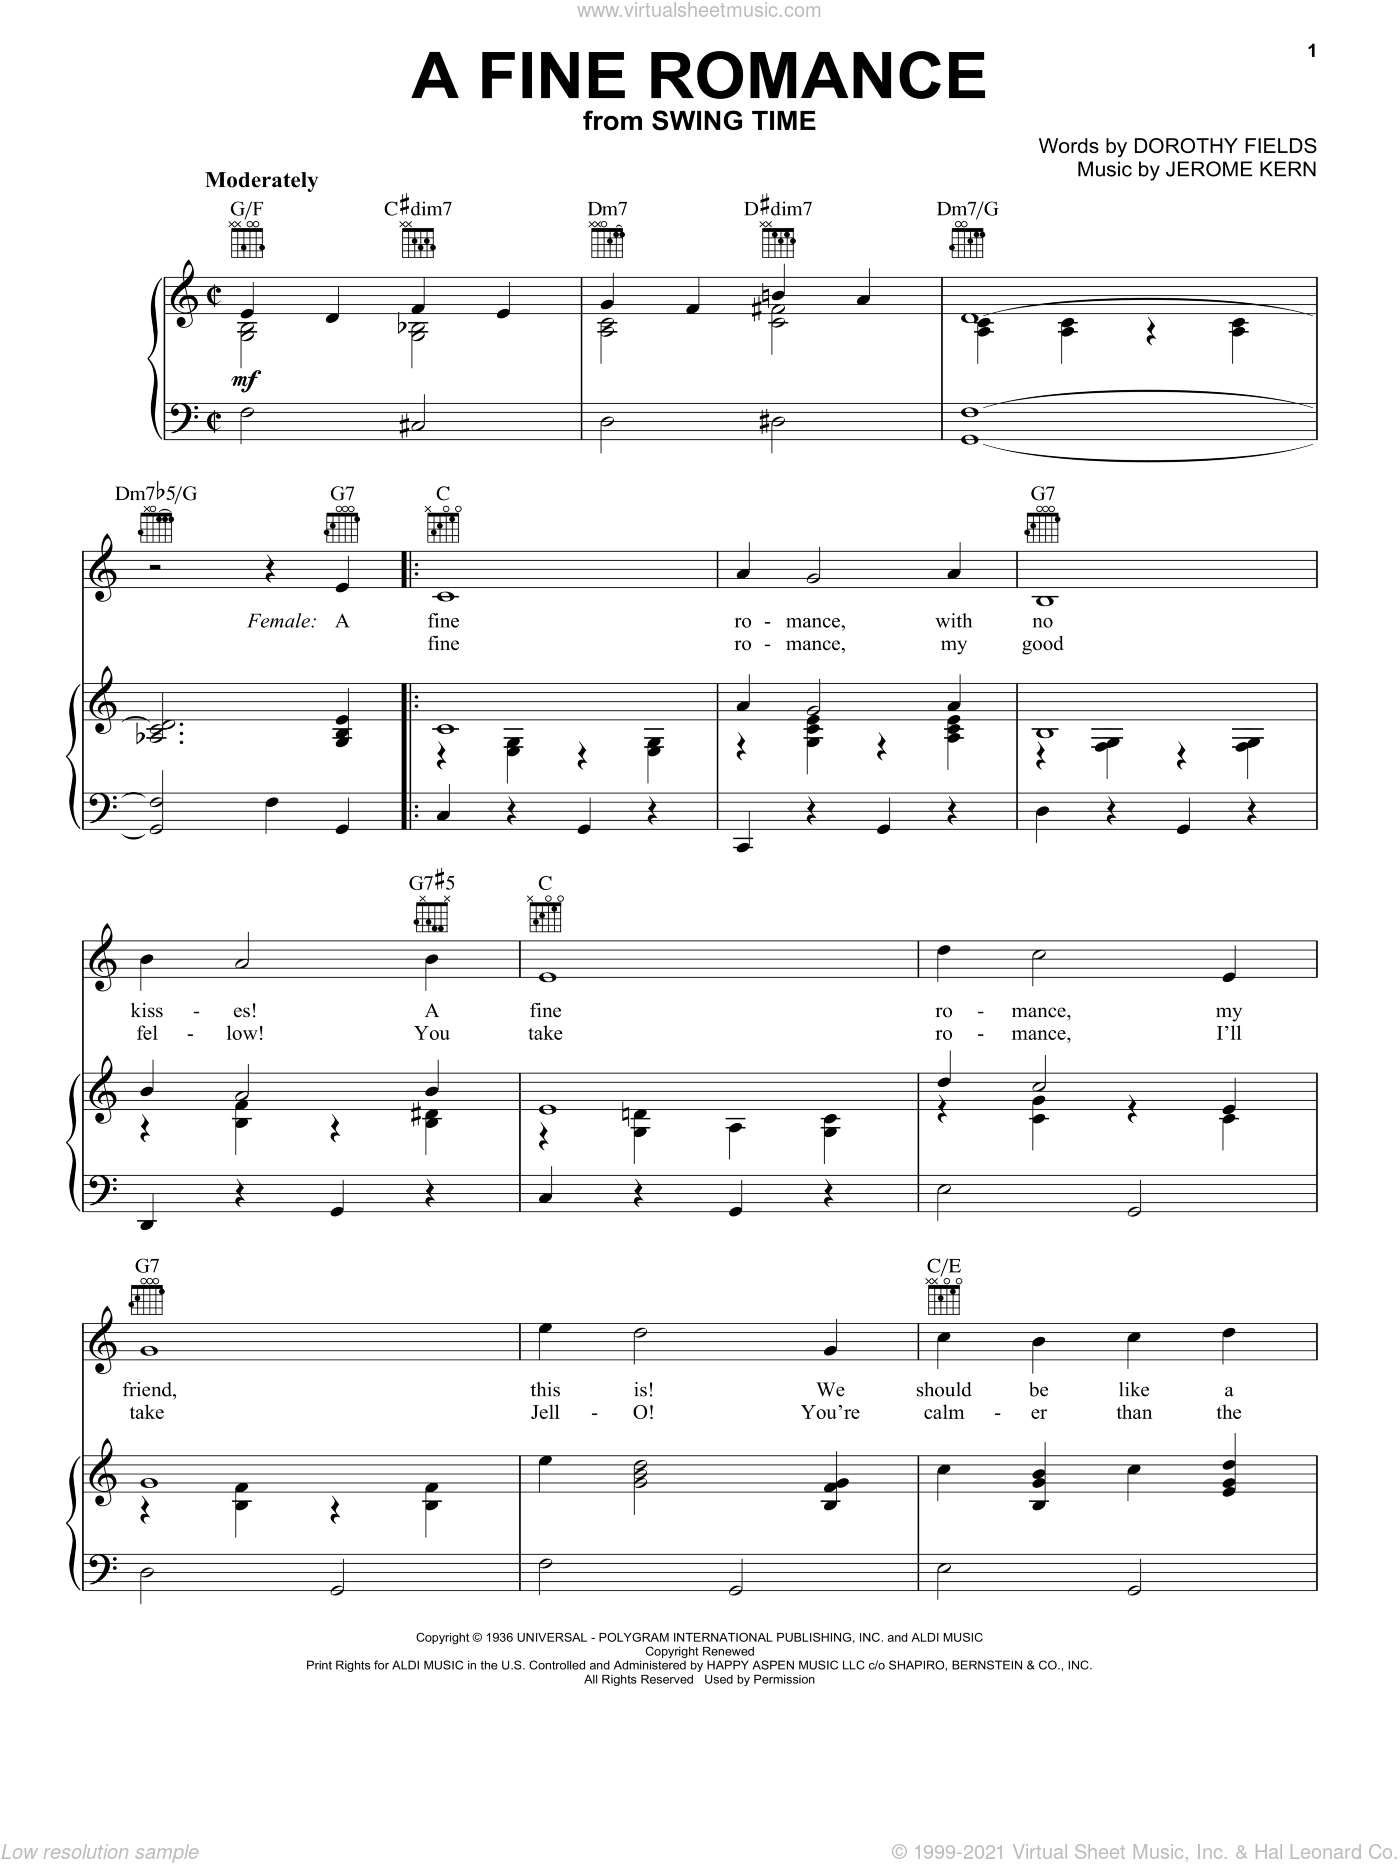 A Fine Romance sheet music for voice, piano or guitar by Jerome Kern, Billie Holiday, Ella Fitzgerald, Frank Sinatra, Fred Astaire, Lena Horne and Dorothy Fields, intermediate skill level